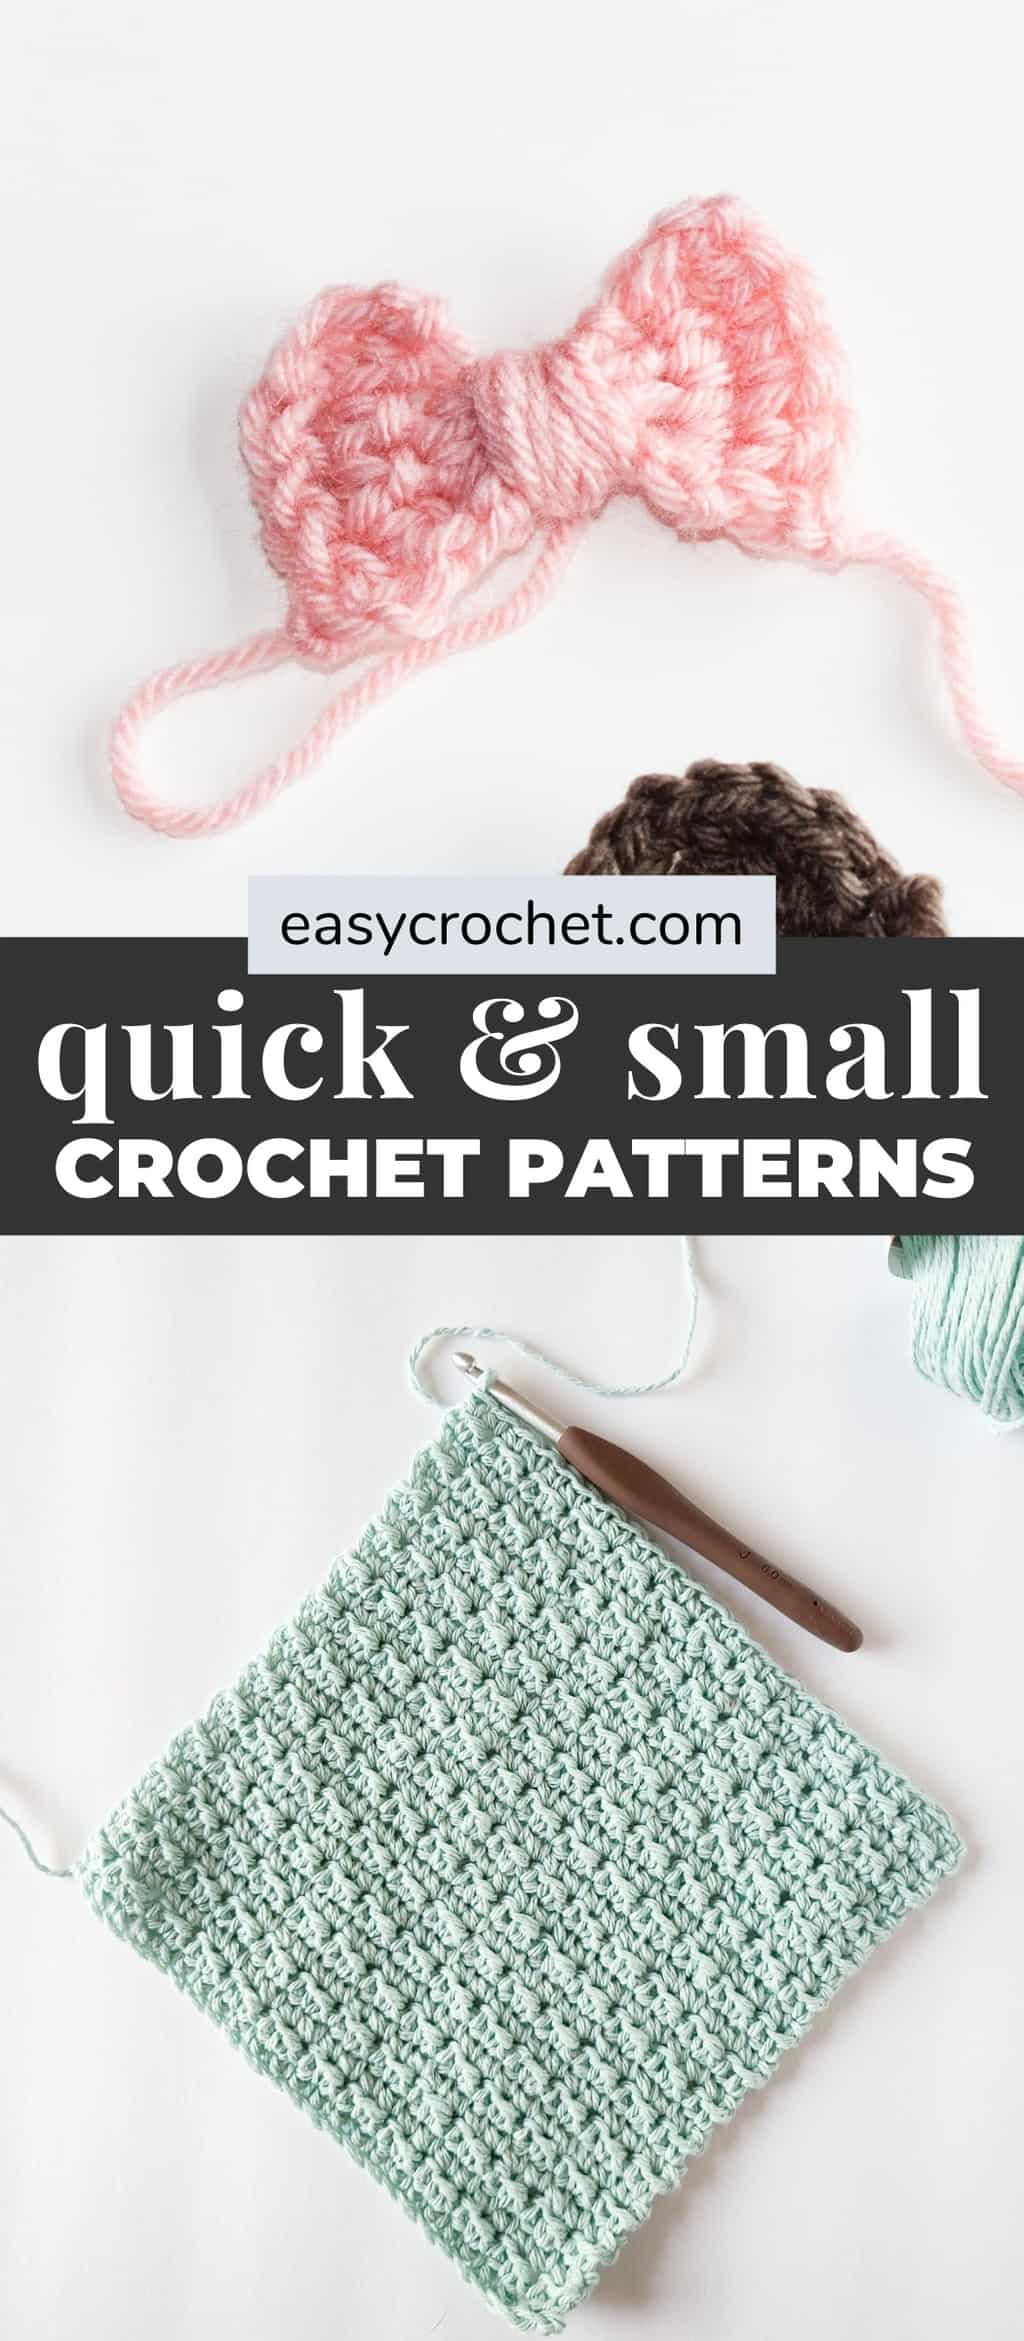 Small & Quick Crochet Patterns